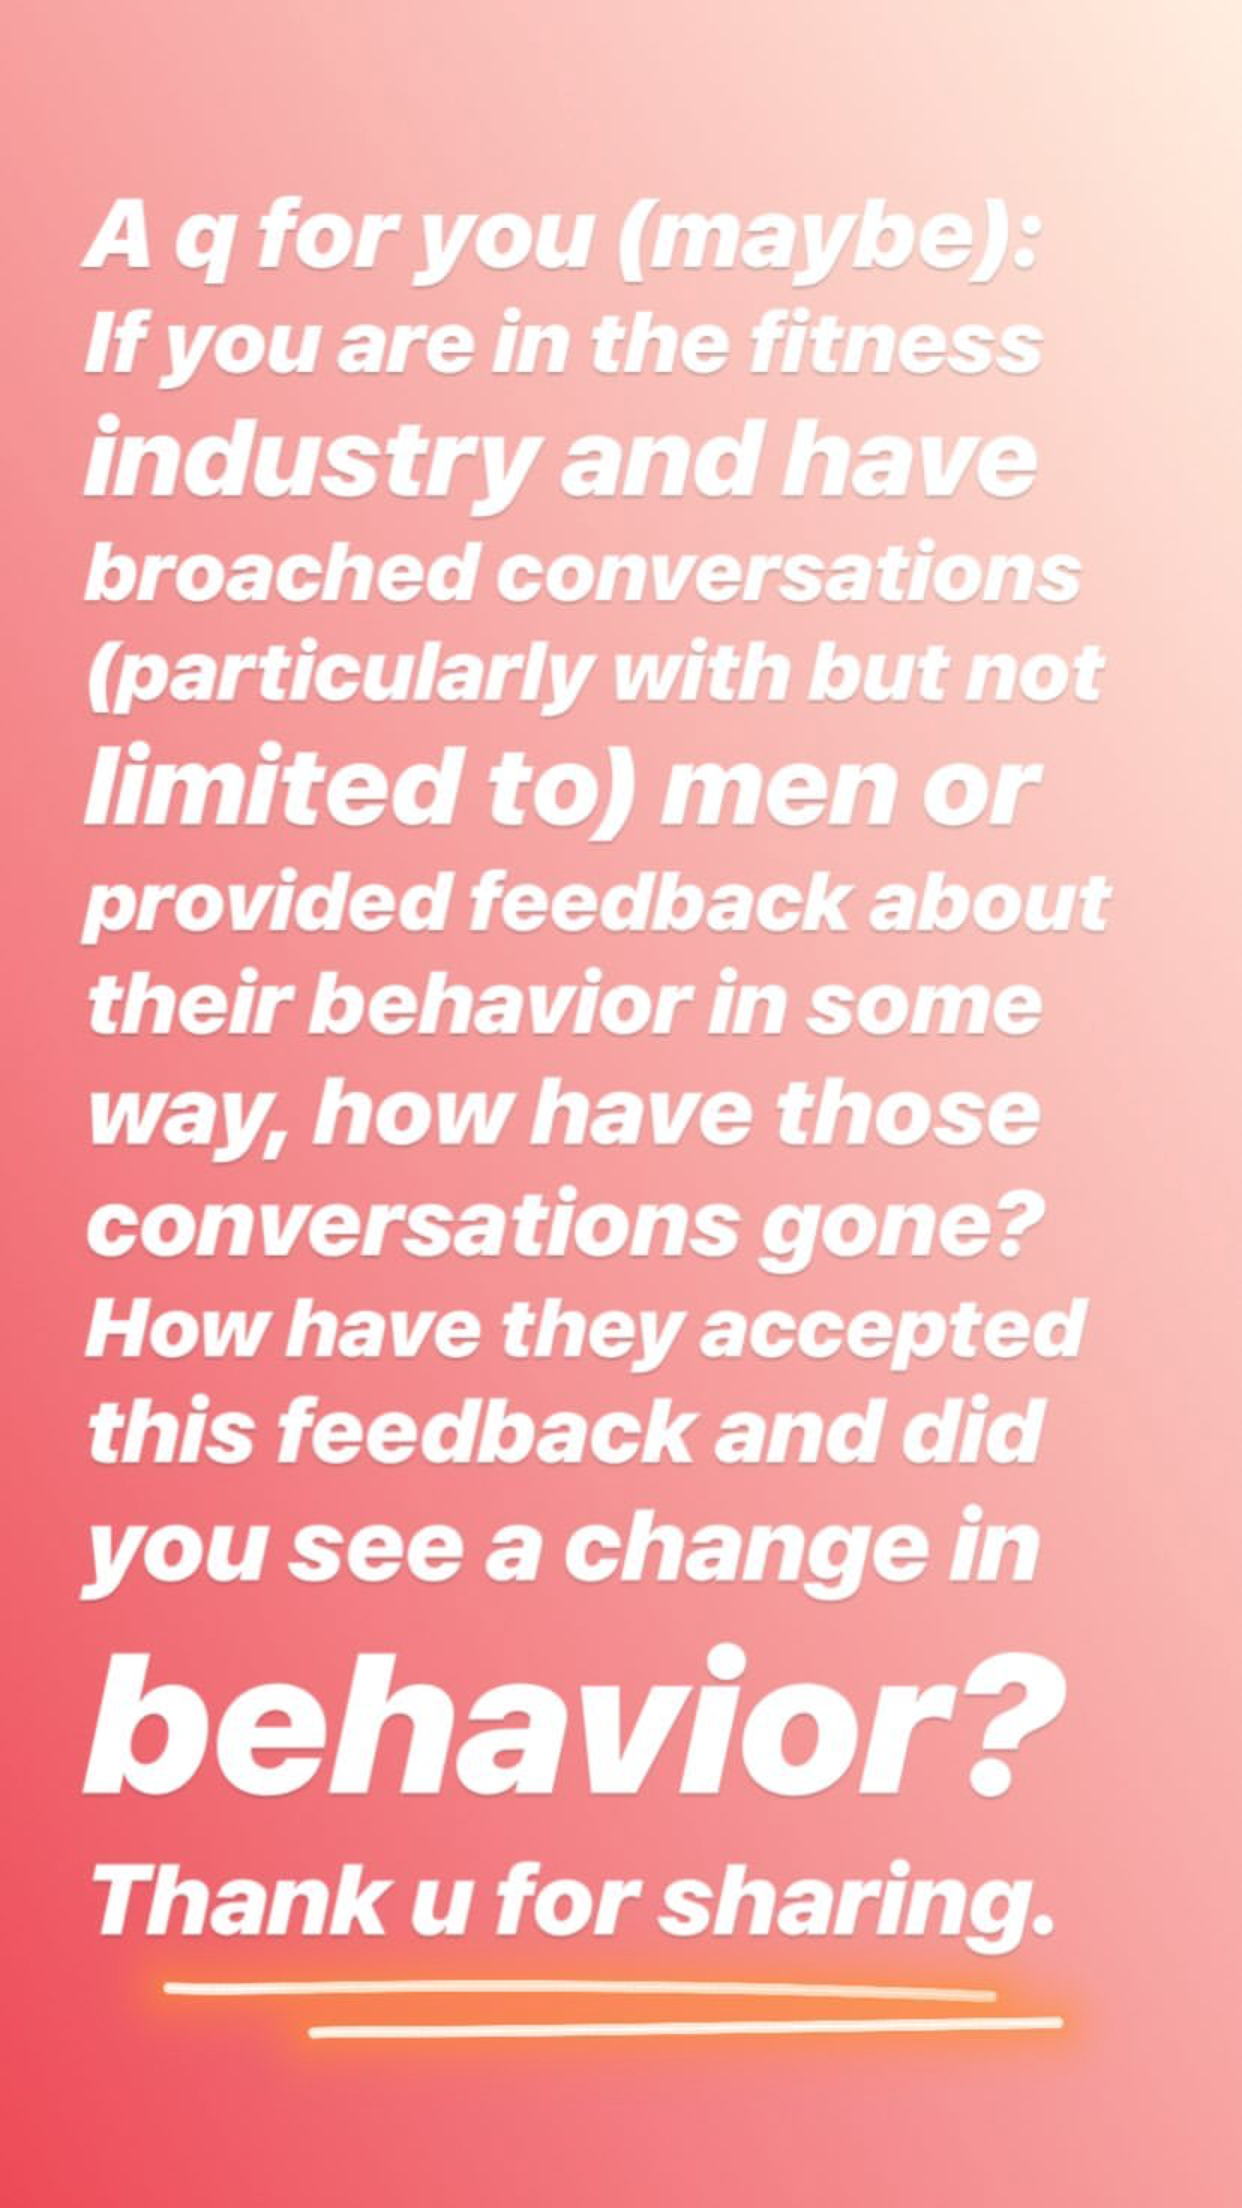 ig story.png